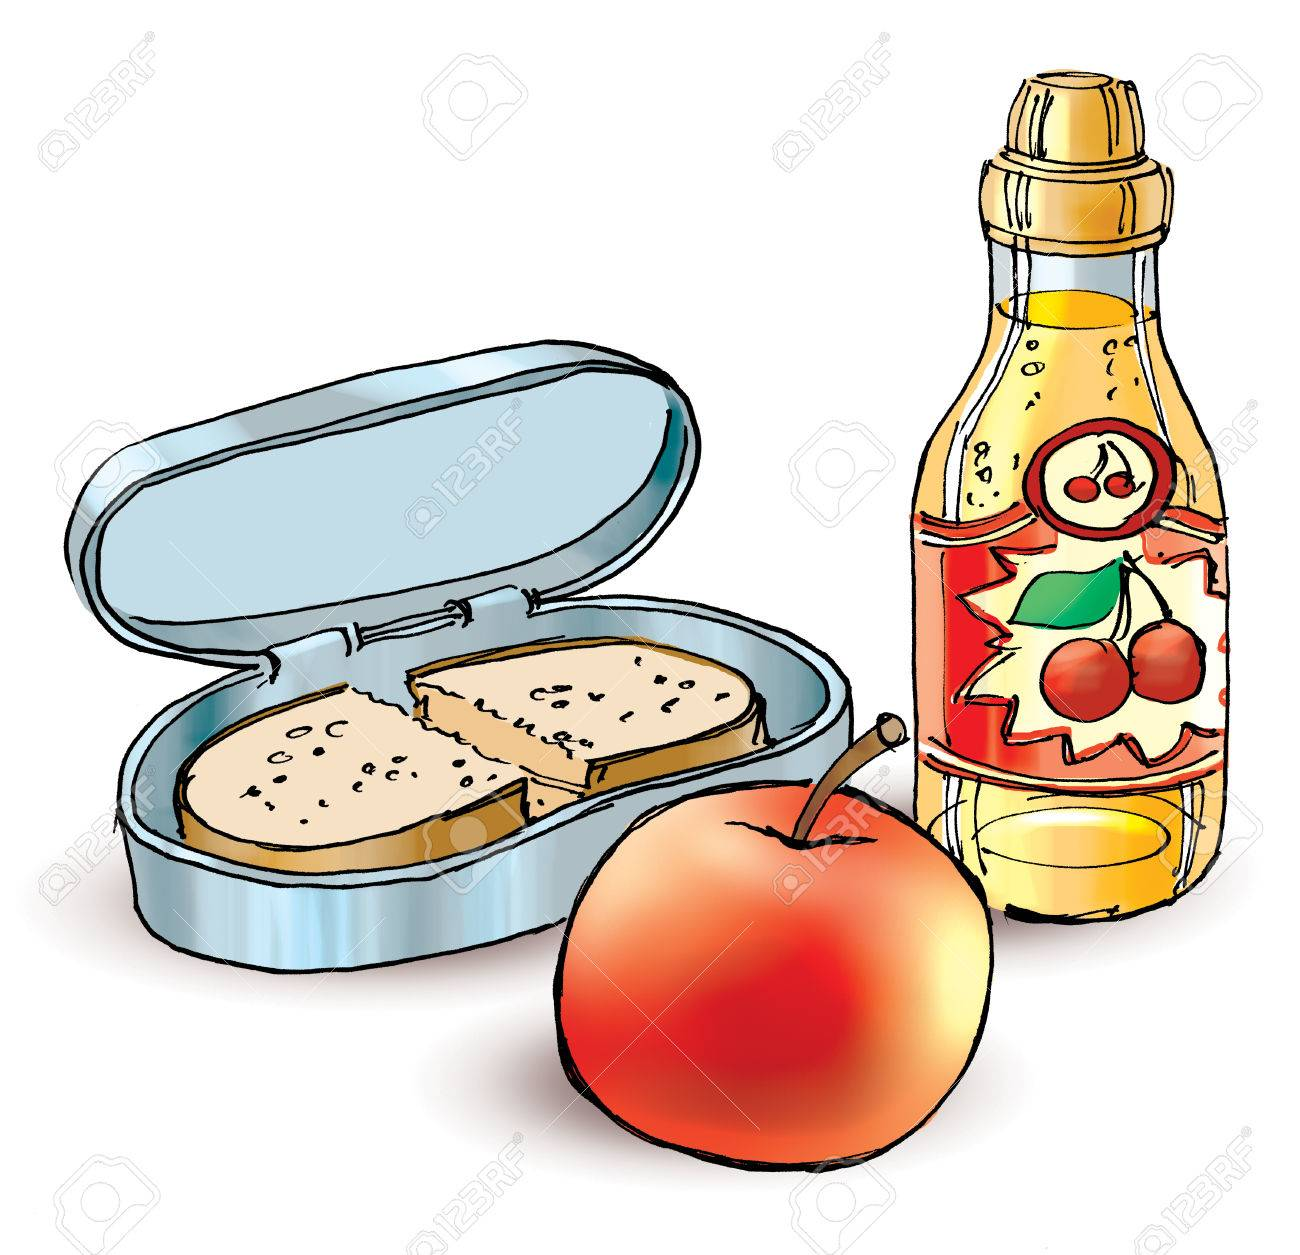 1300x1255 Lunch Box Cartoon Stock Photos Amp Pictures. Royalty Free Lunch Box